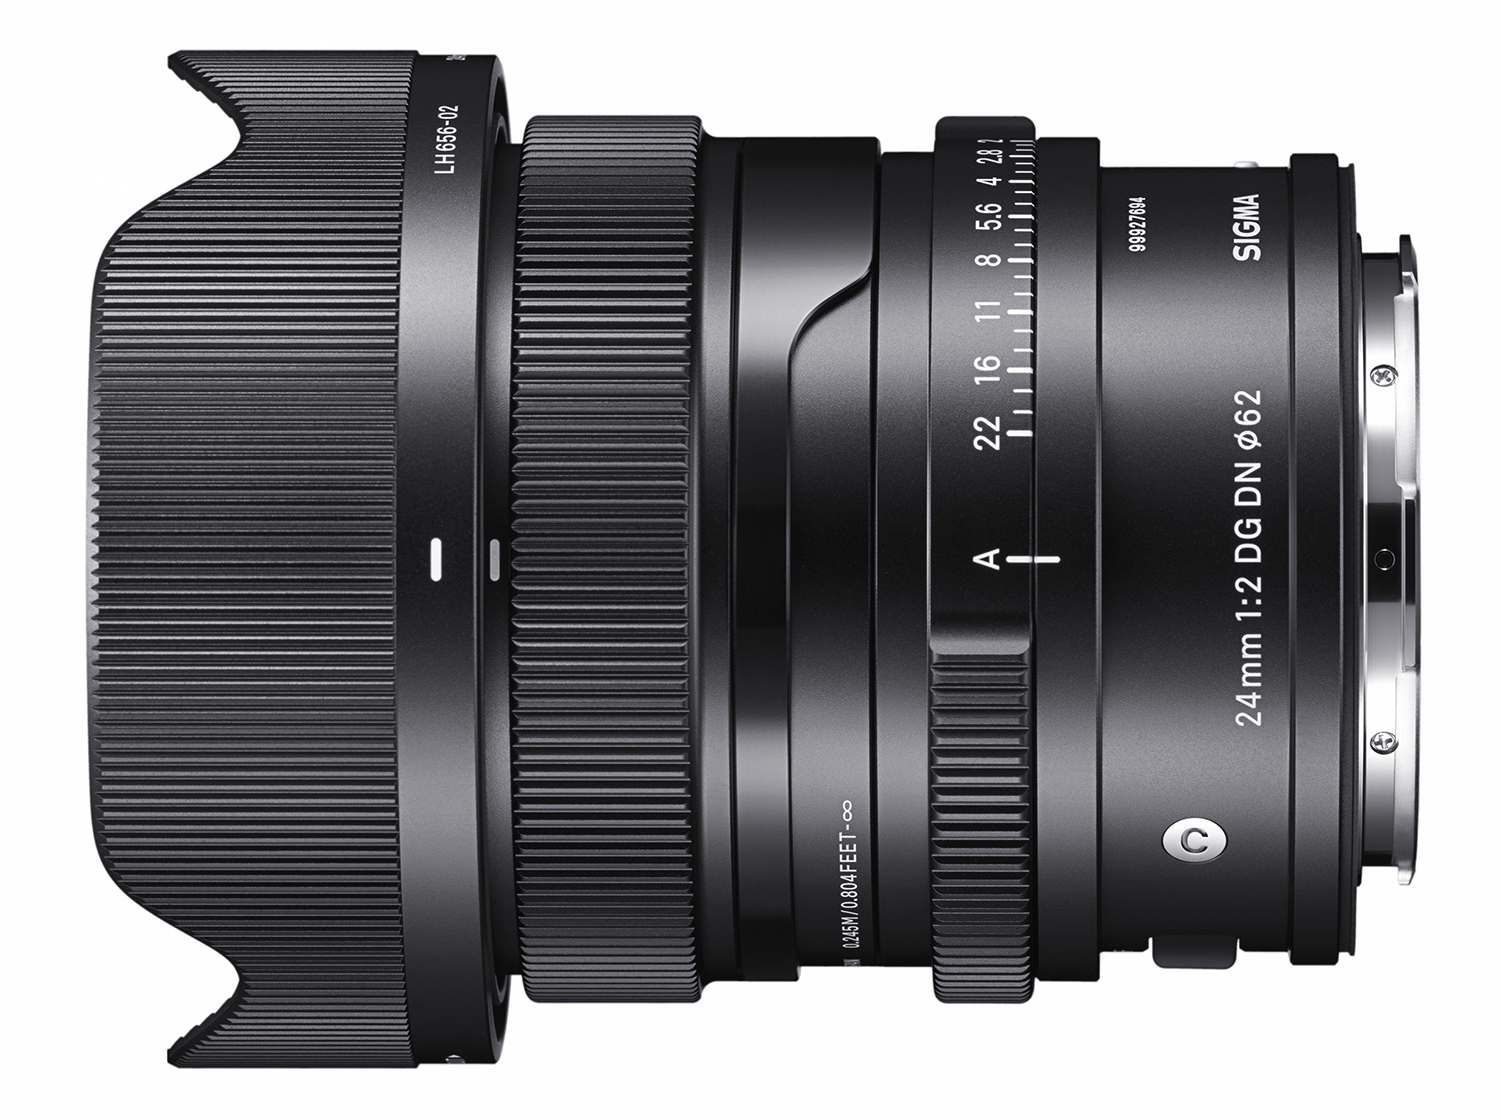 Photo of Sigma 24mm lens